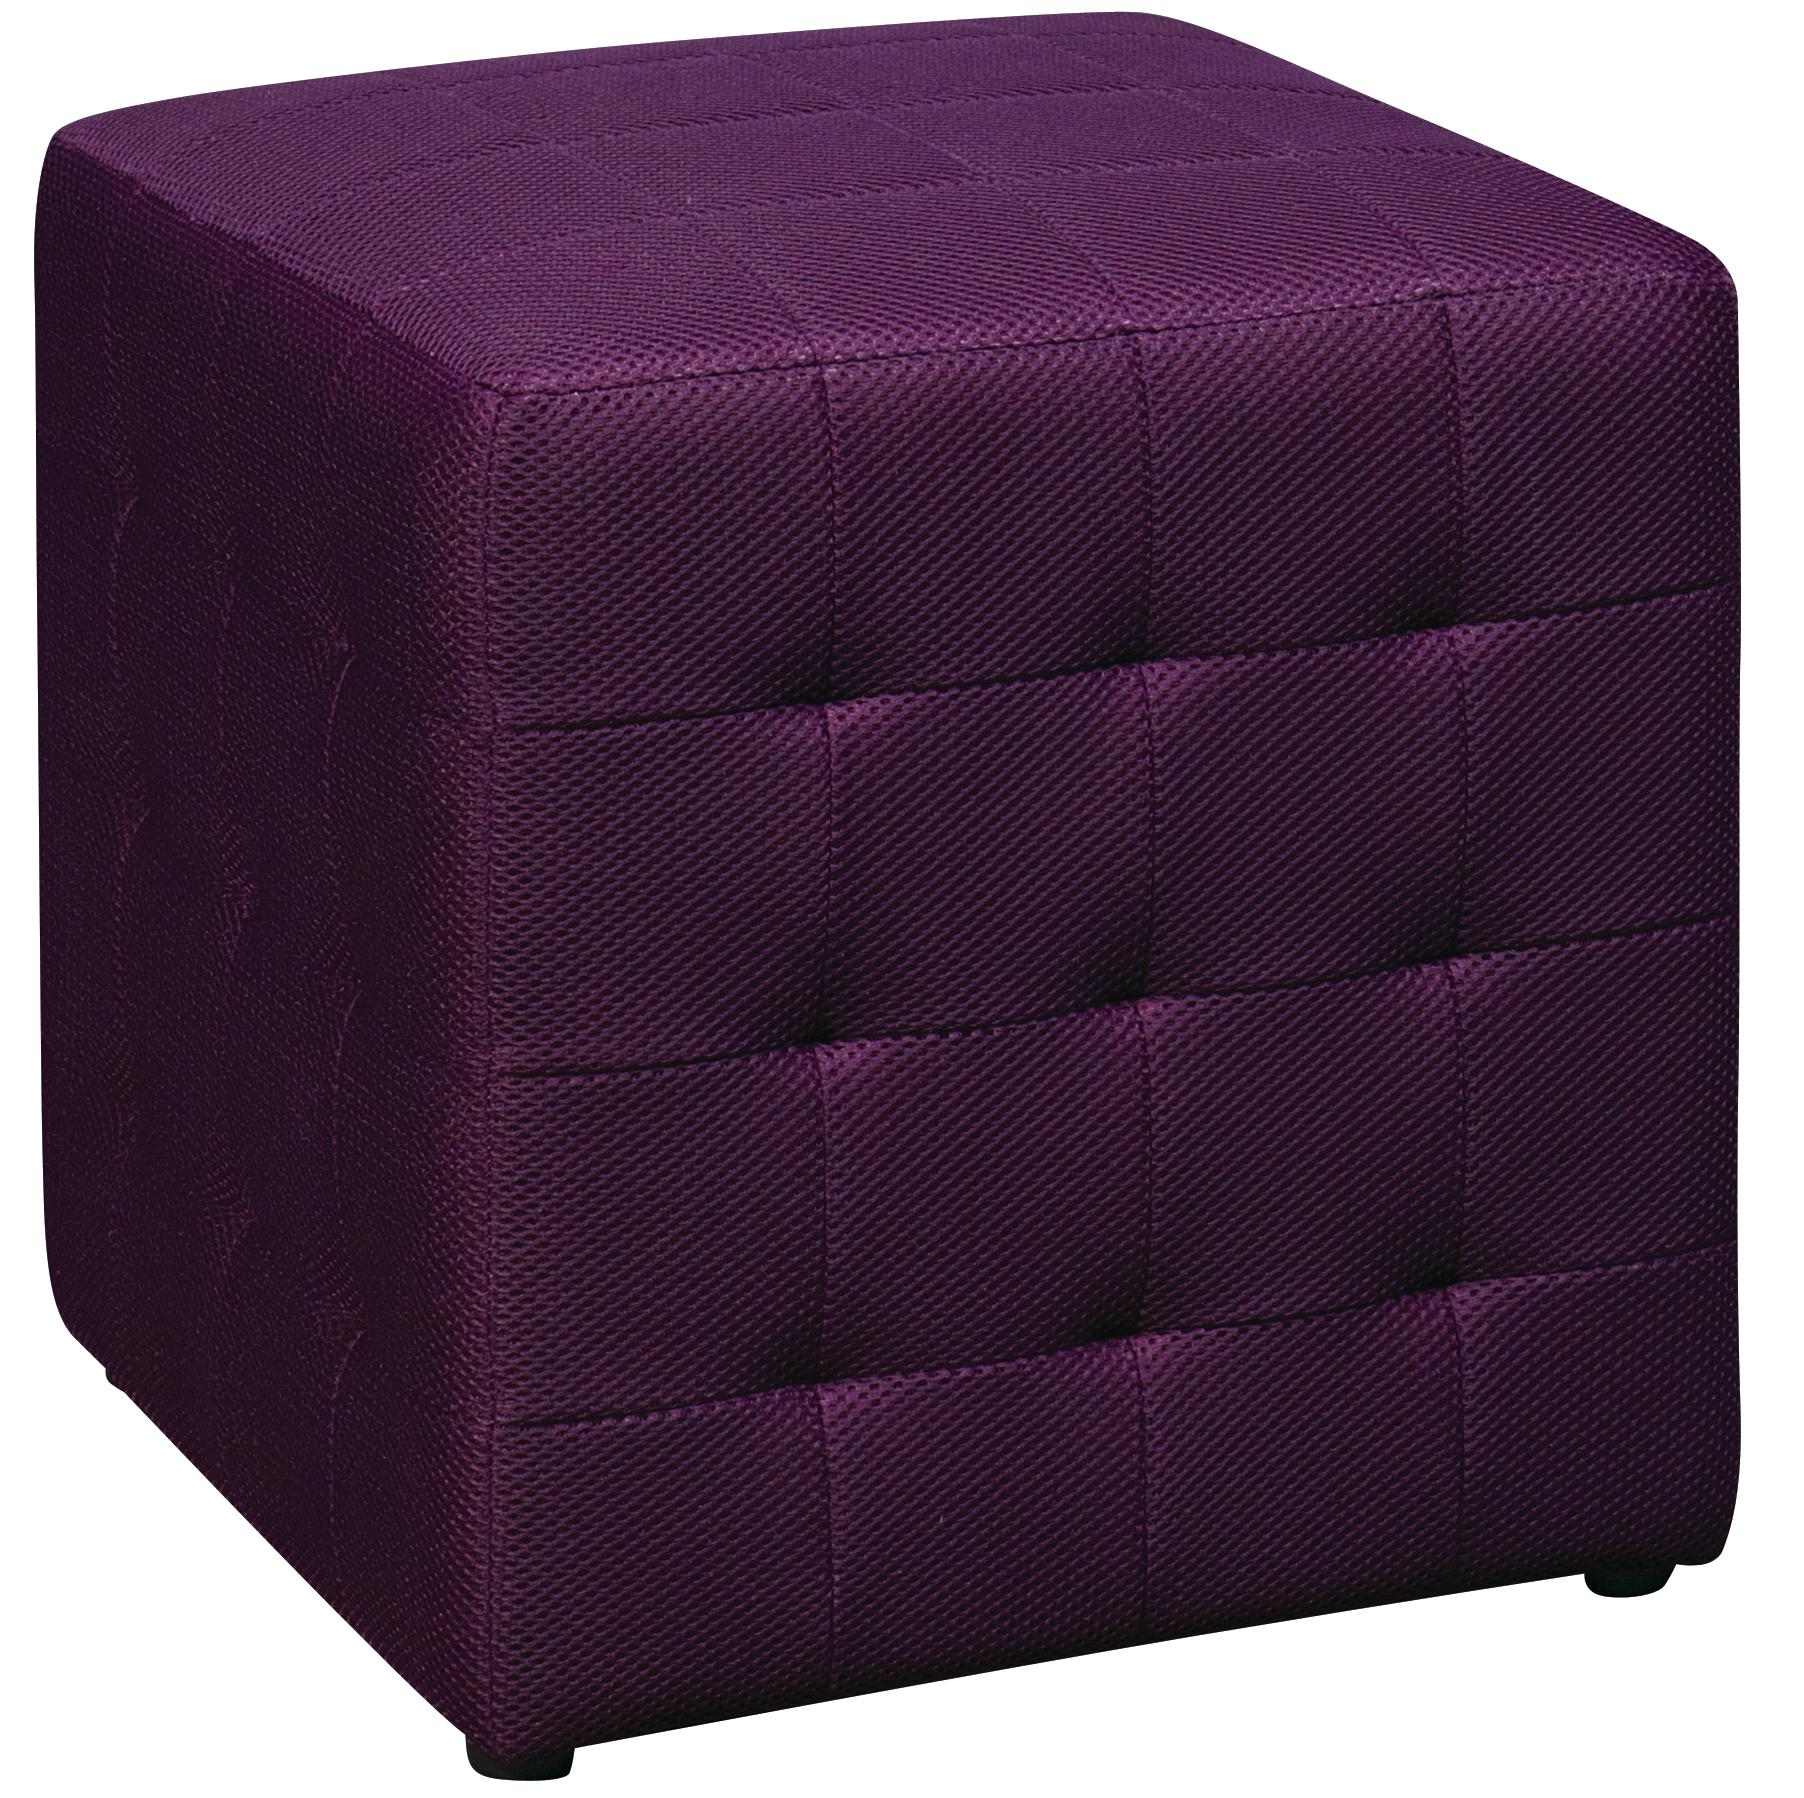 Ottomans Fabric Cube at Sadler's Home Furnishings